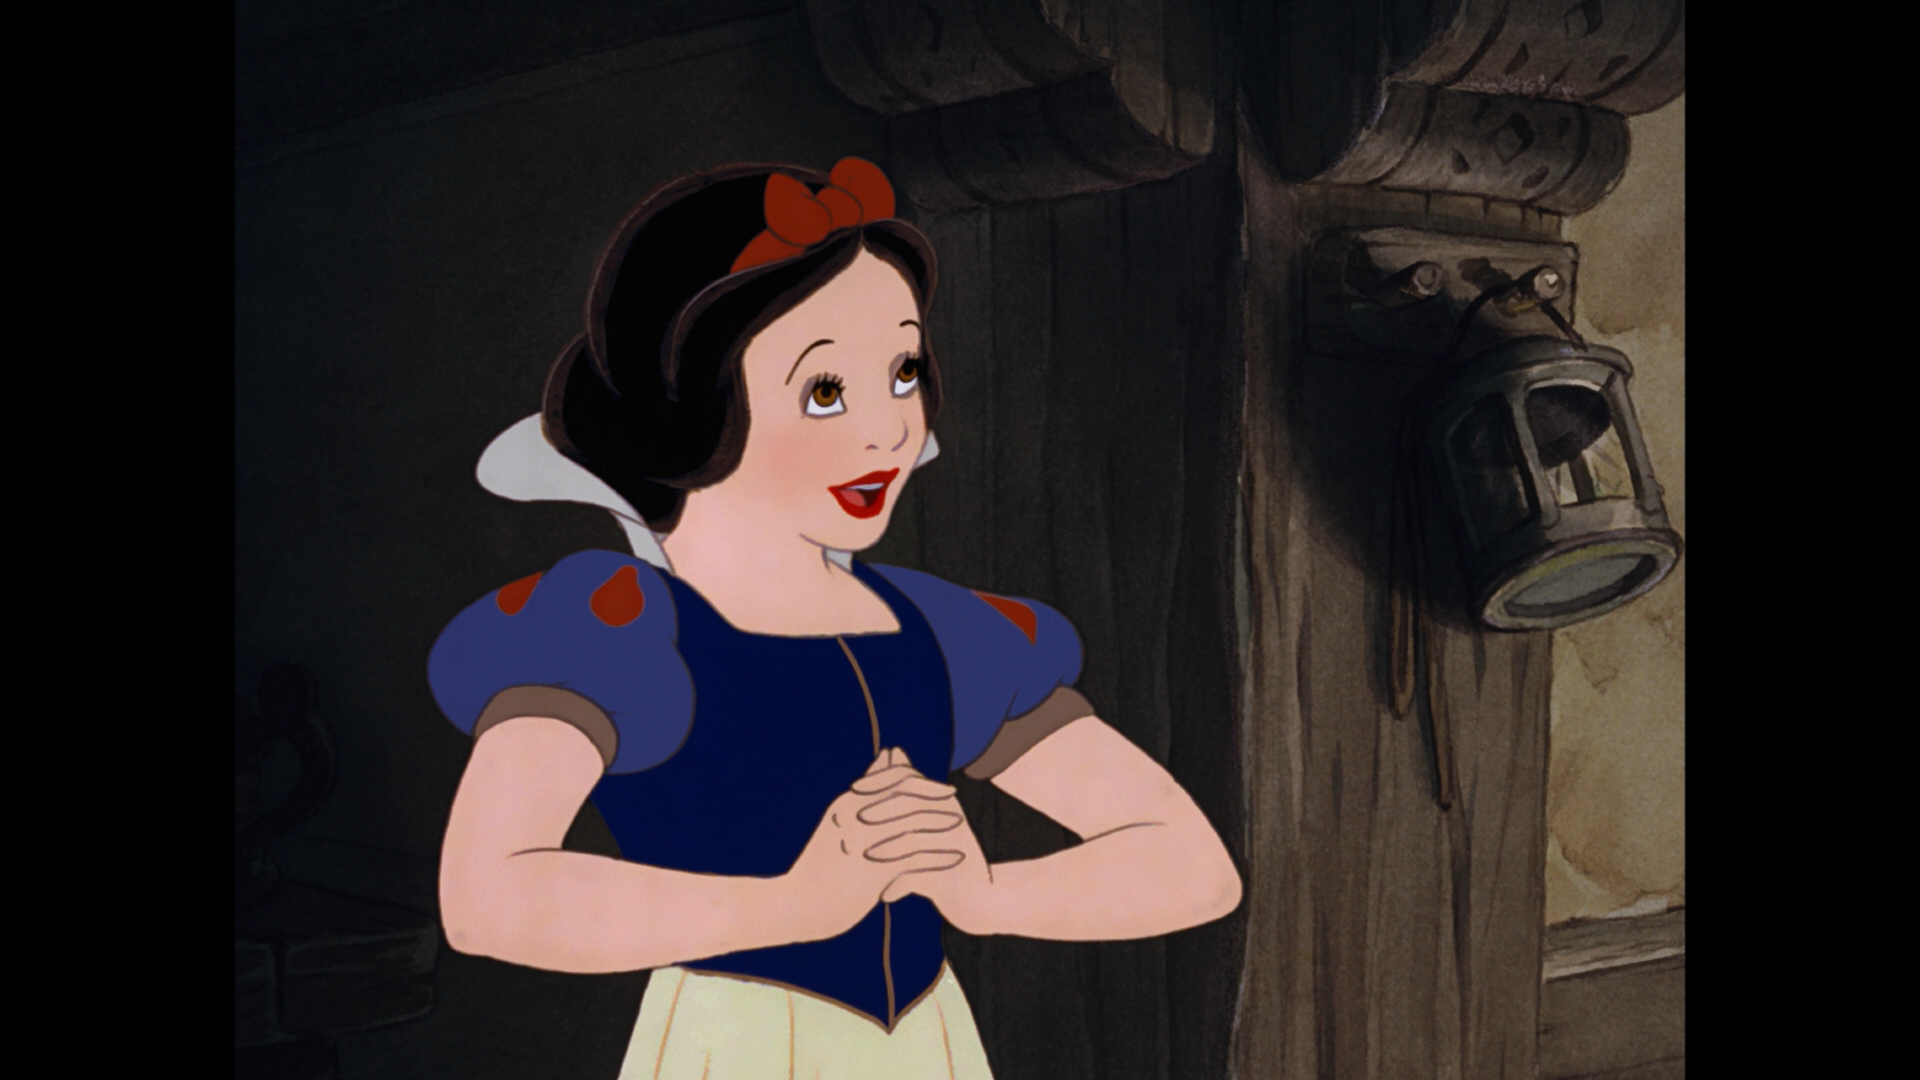 Image snow white and the seven dwarfs 11 png disney wiki fandom powered by wikia